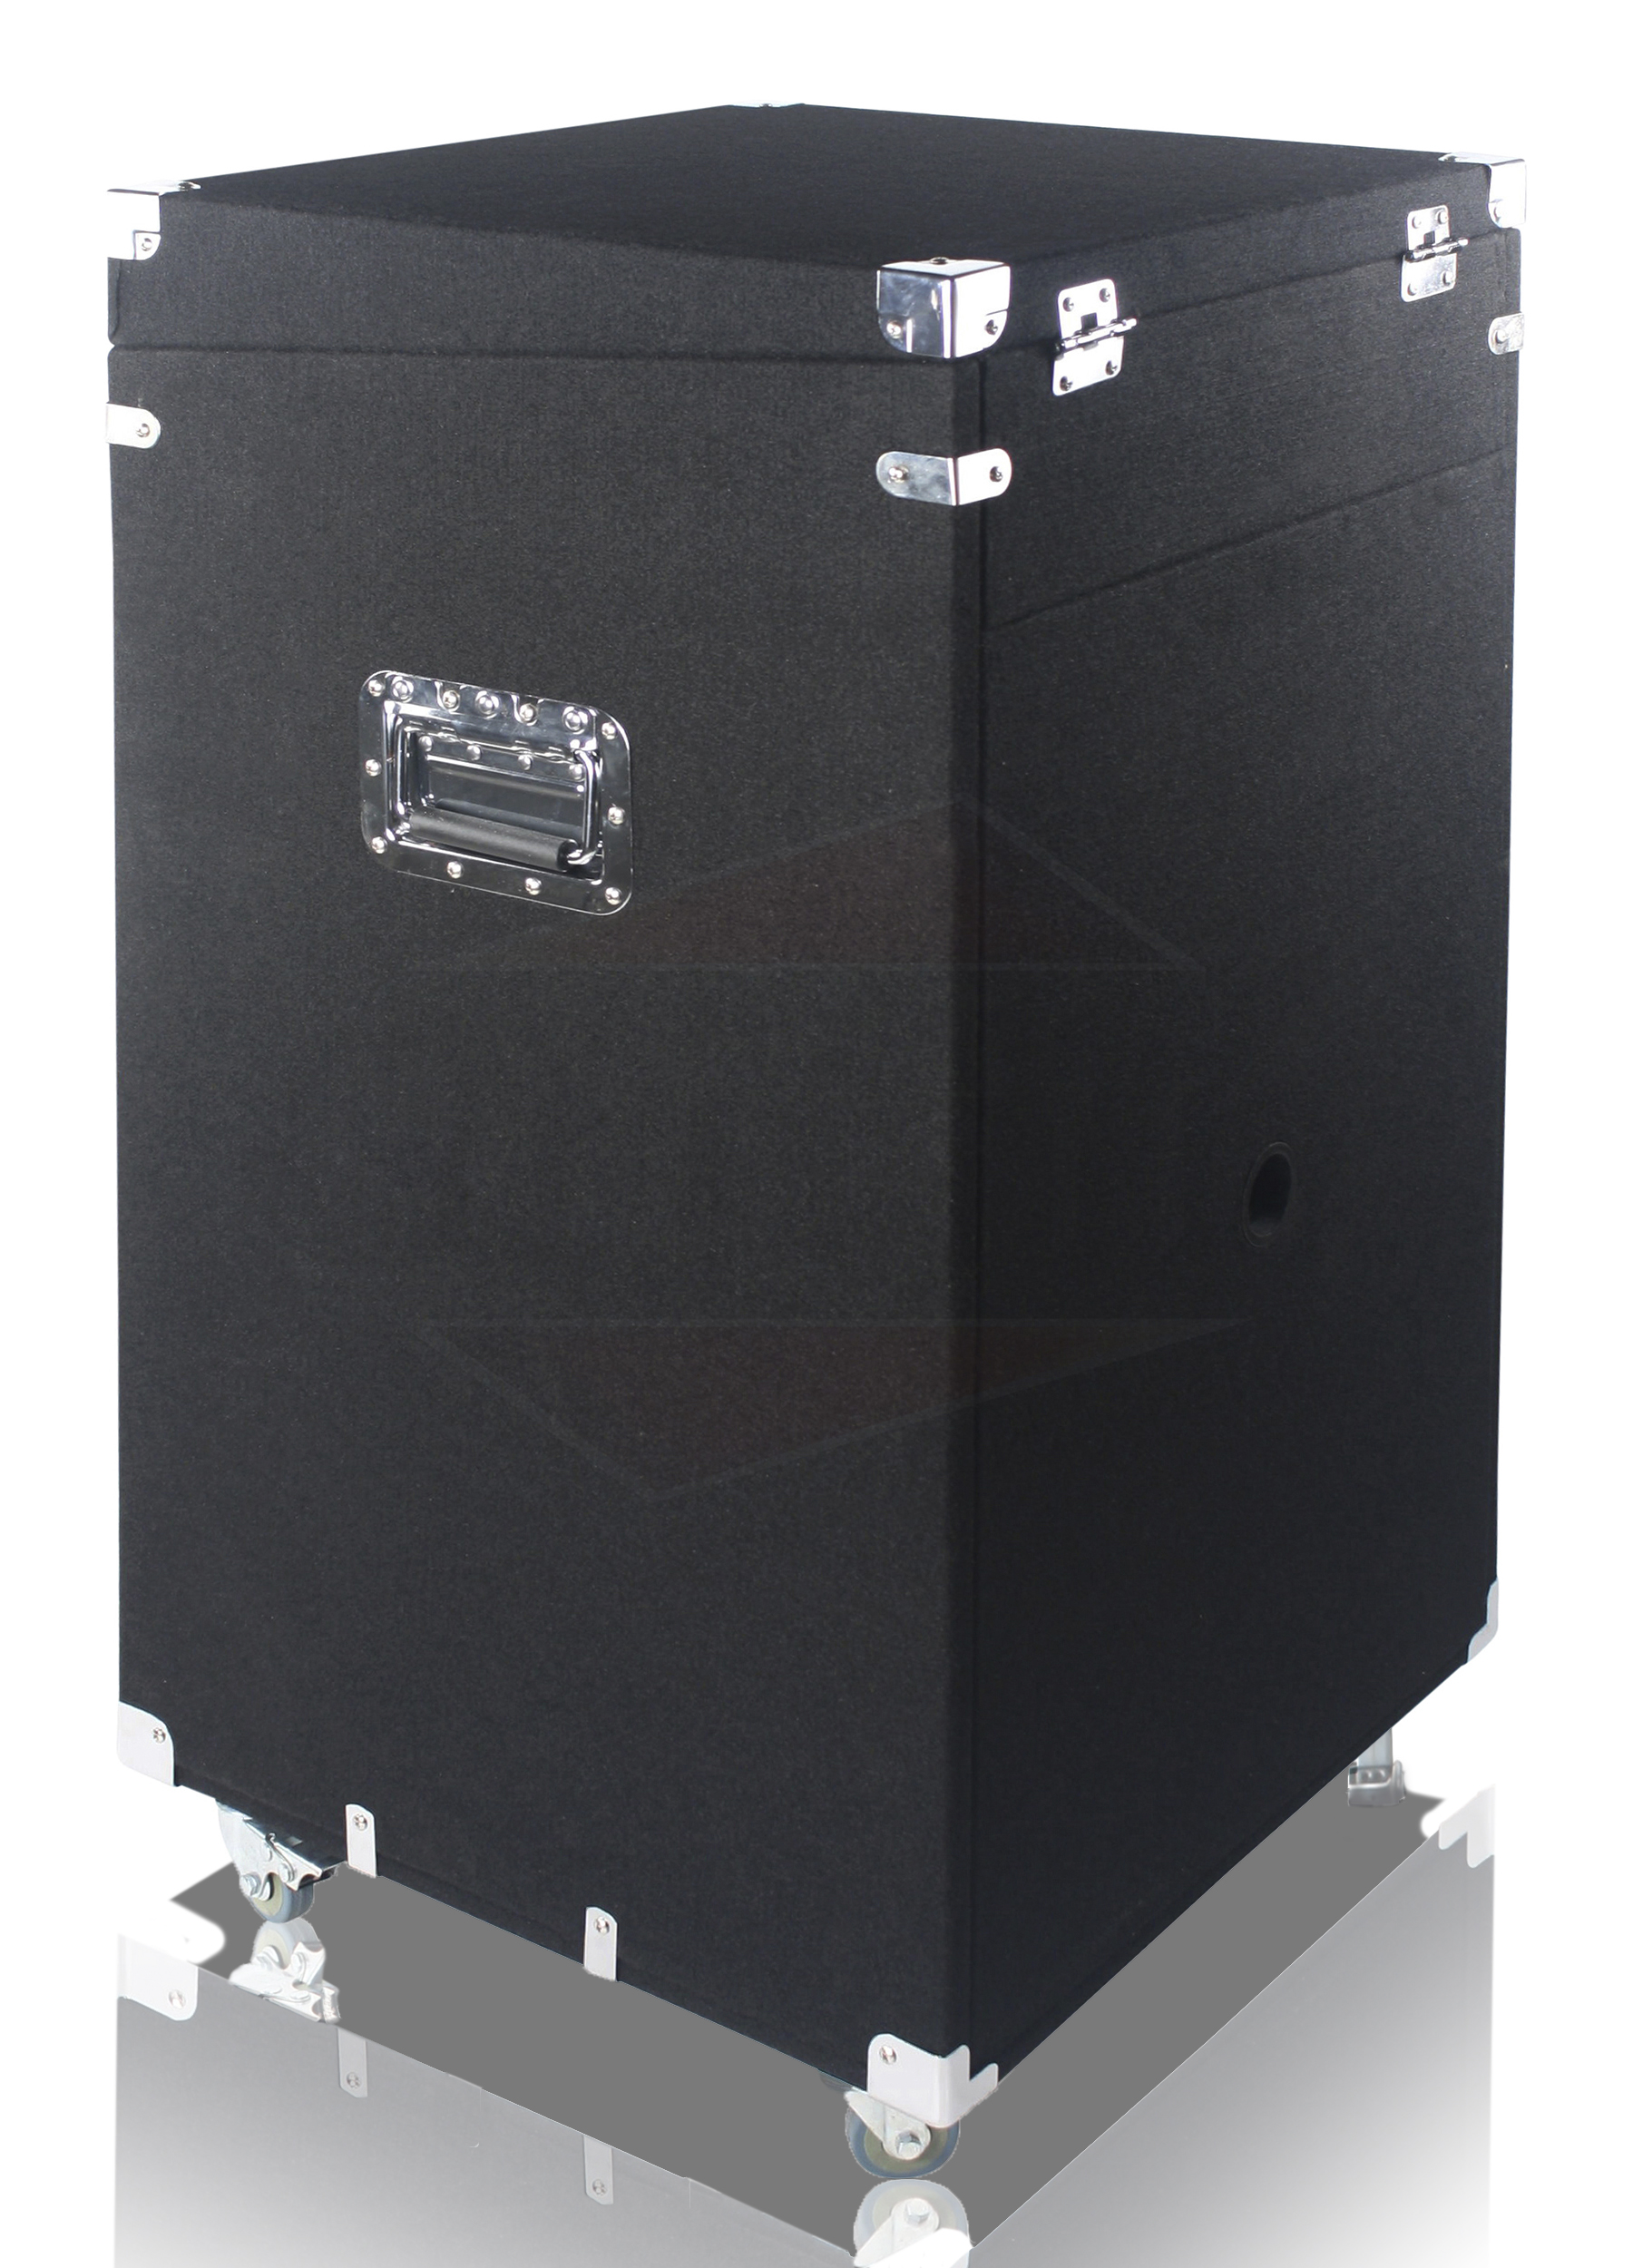 Rack Mount Cabinet Flight Case Studio Mixer Dj Pa Cart